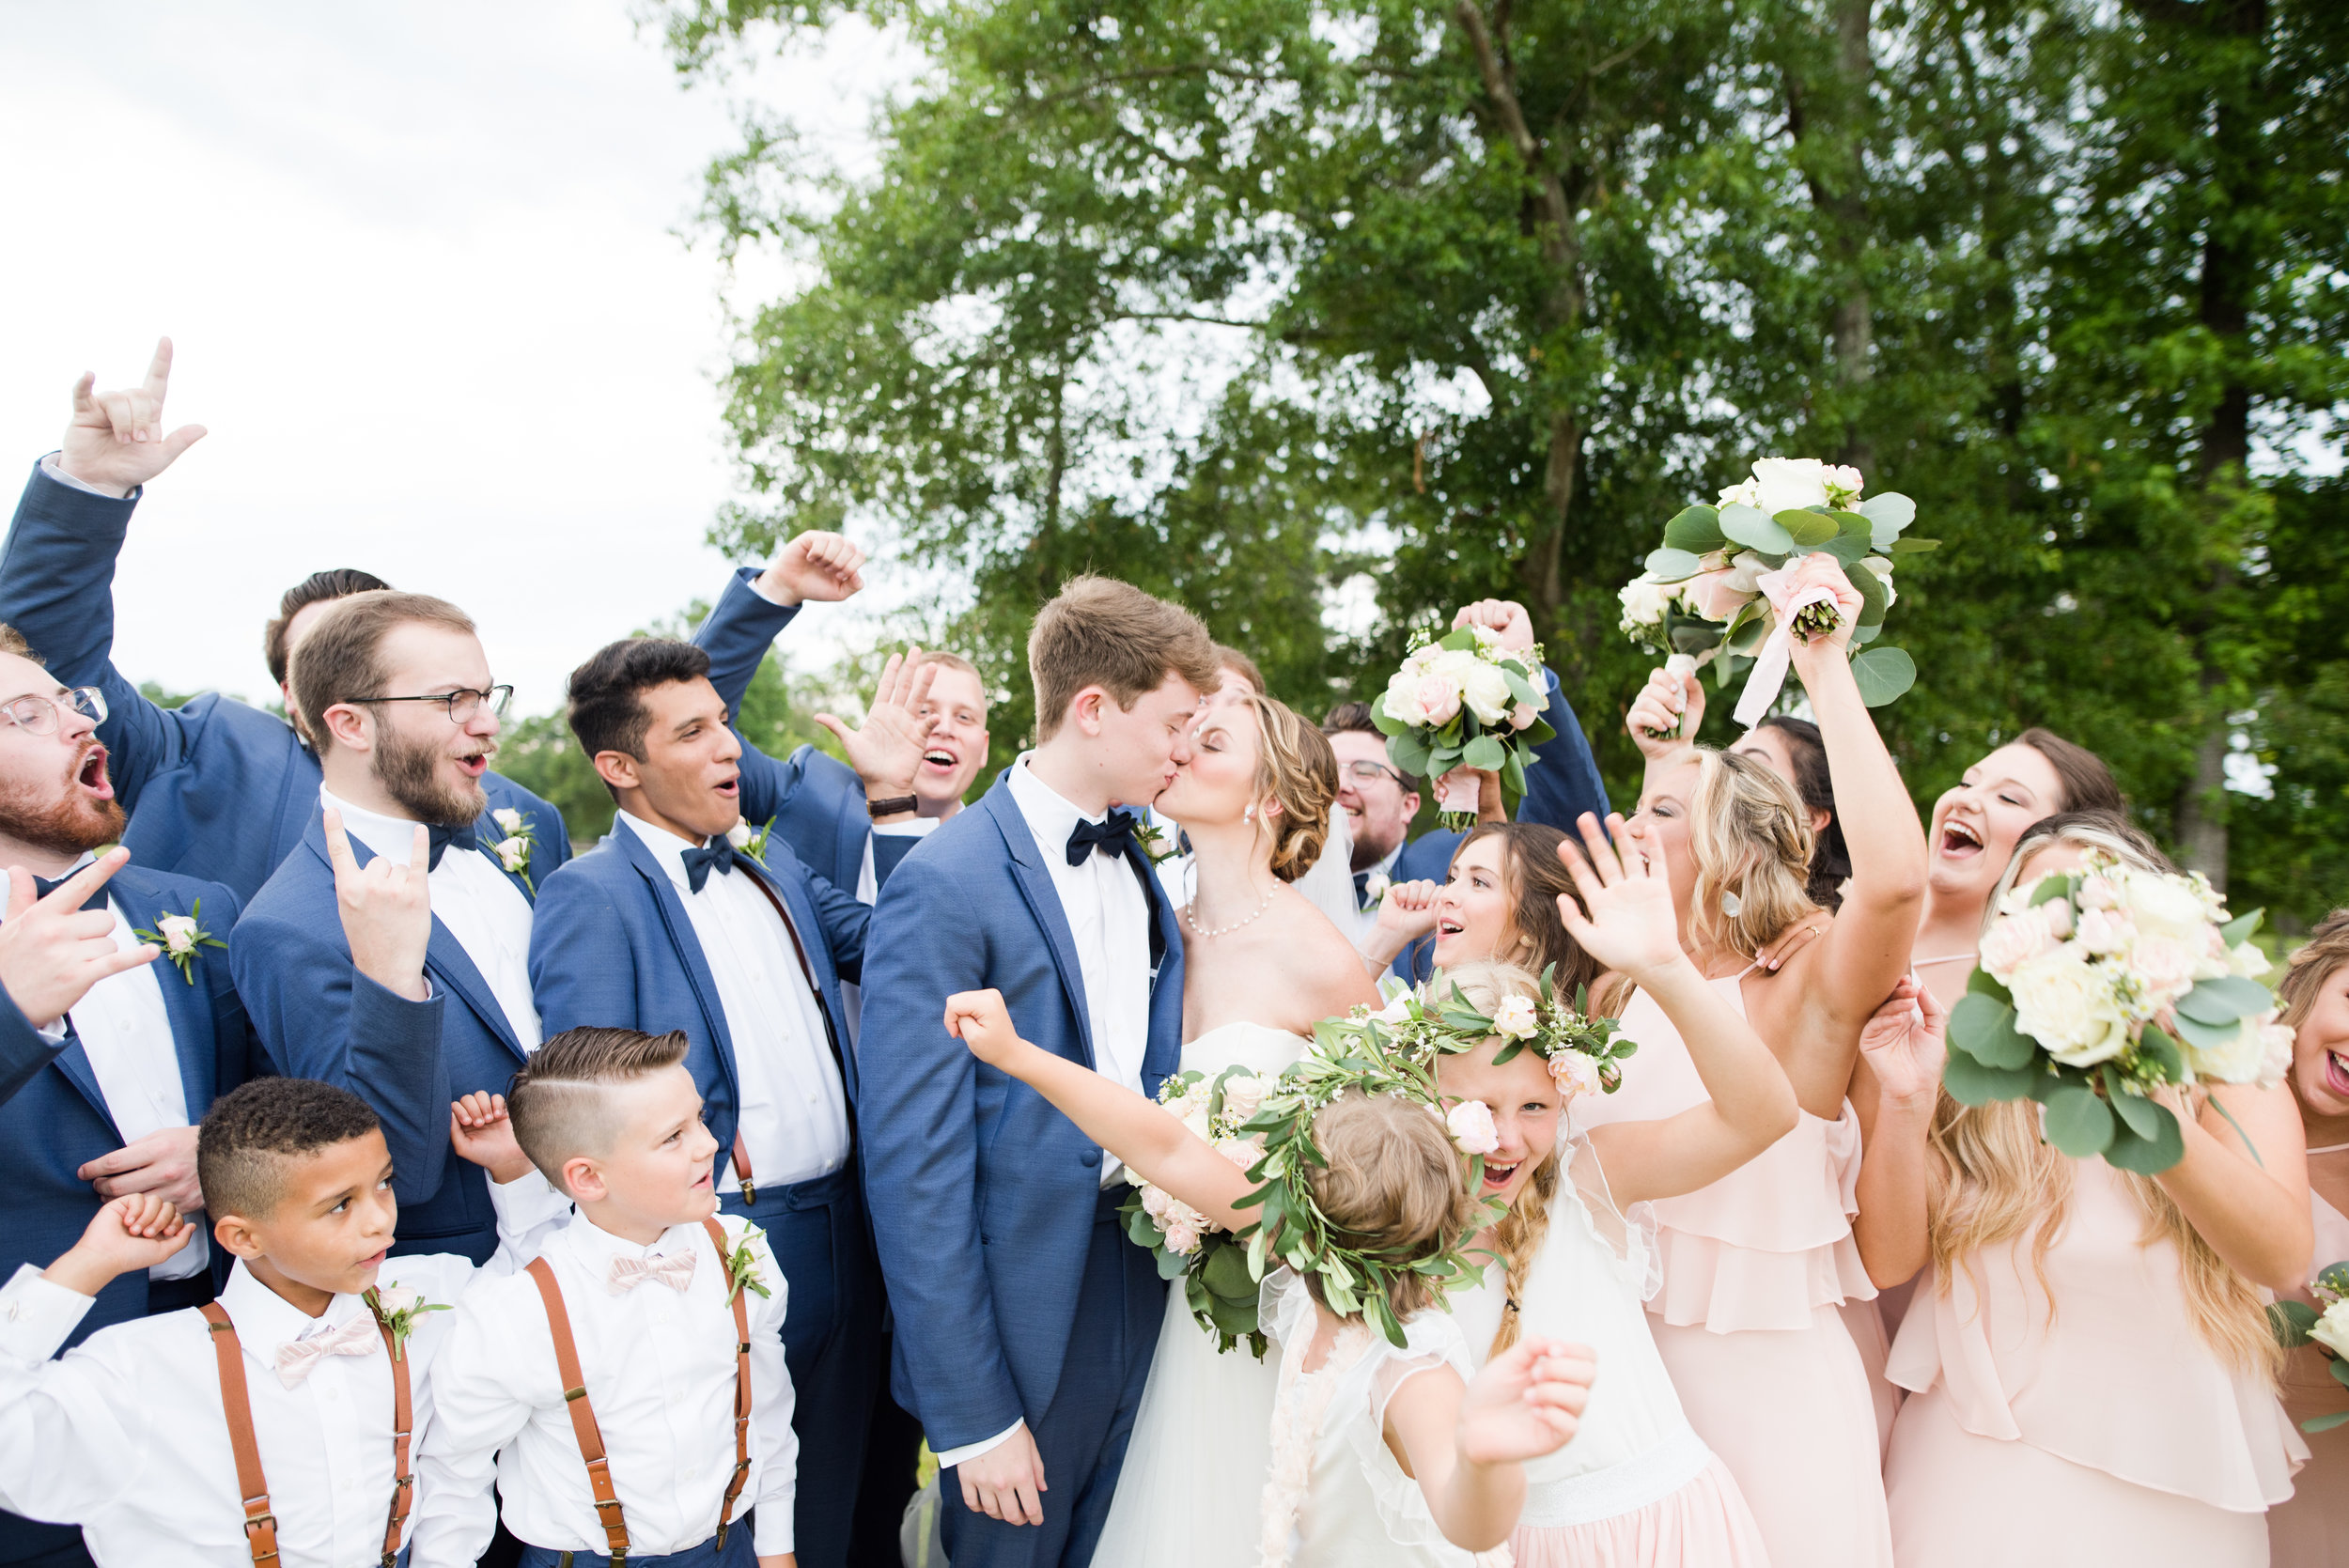 The Barn at Bridlewood wedding in Hattiesburg, Mississippi (MS) in June | Bride and Groom with Wedding bridal party